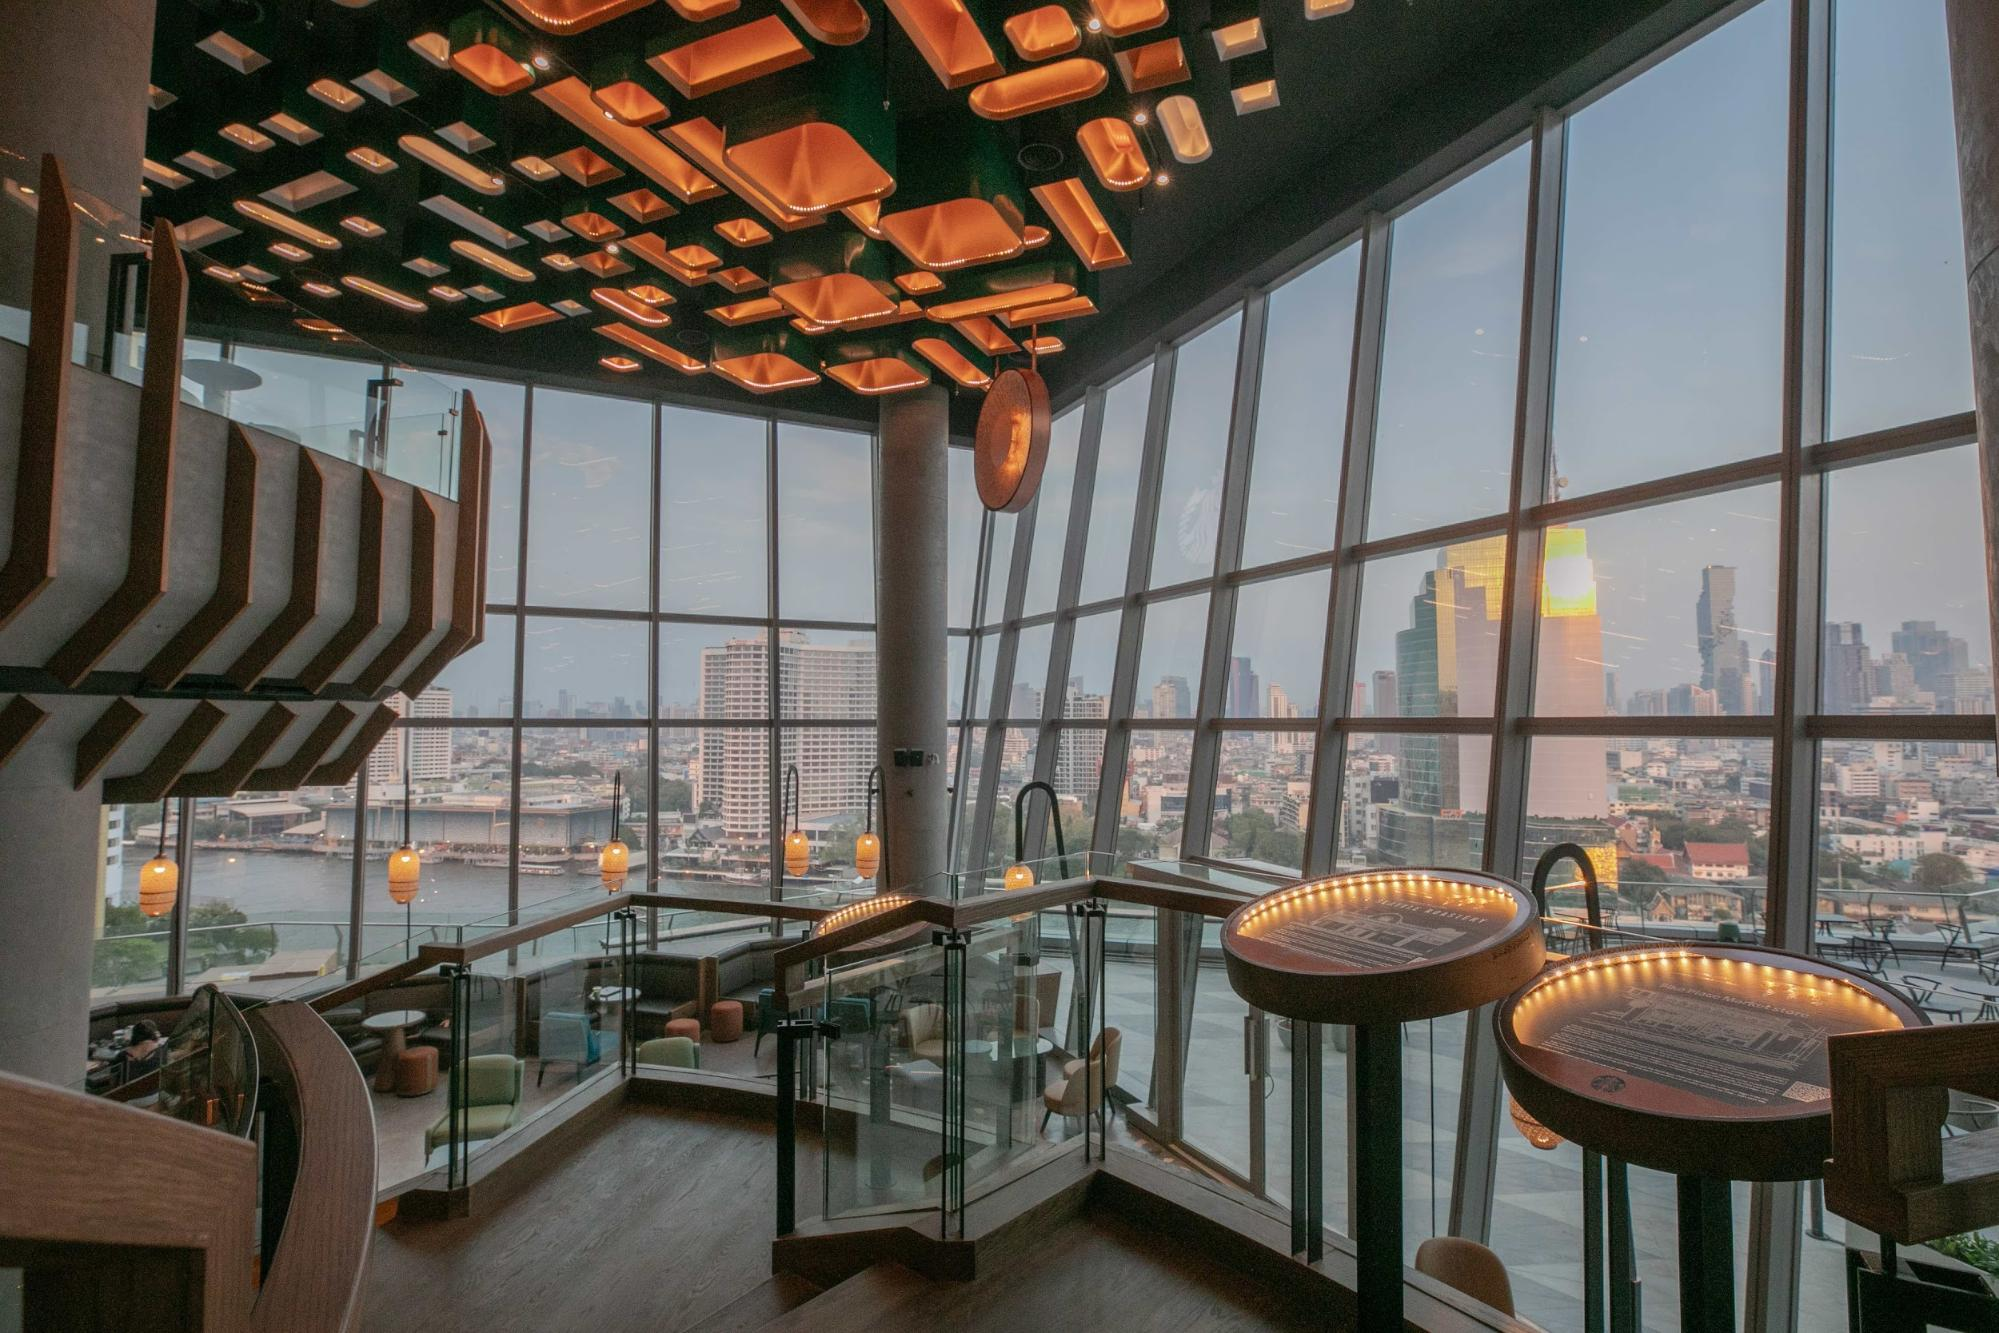 ICONSIAM Has The Biggest Starbucks Outlet In Thailand